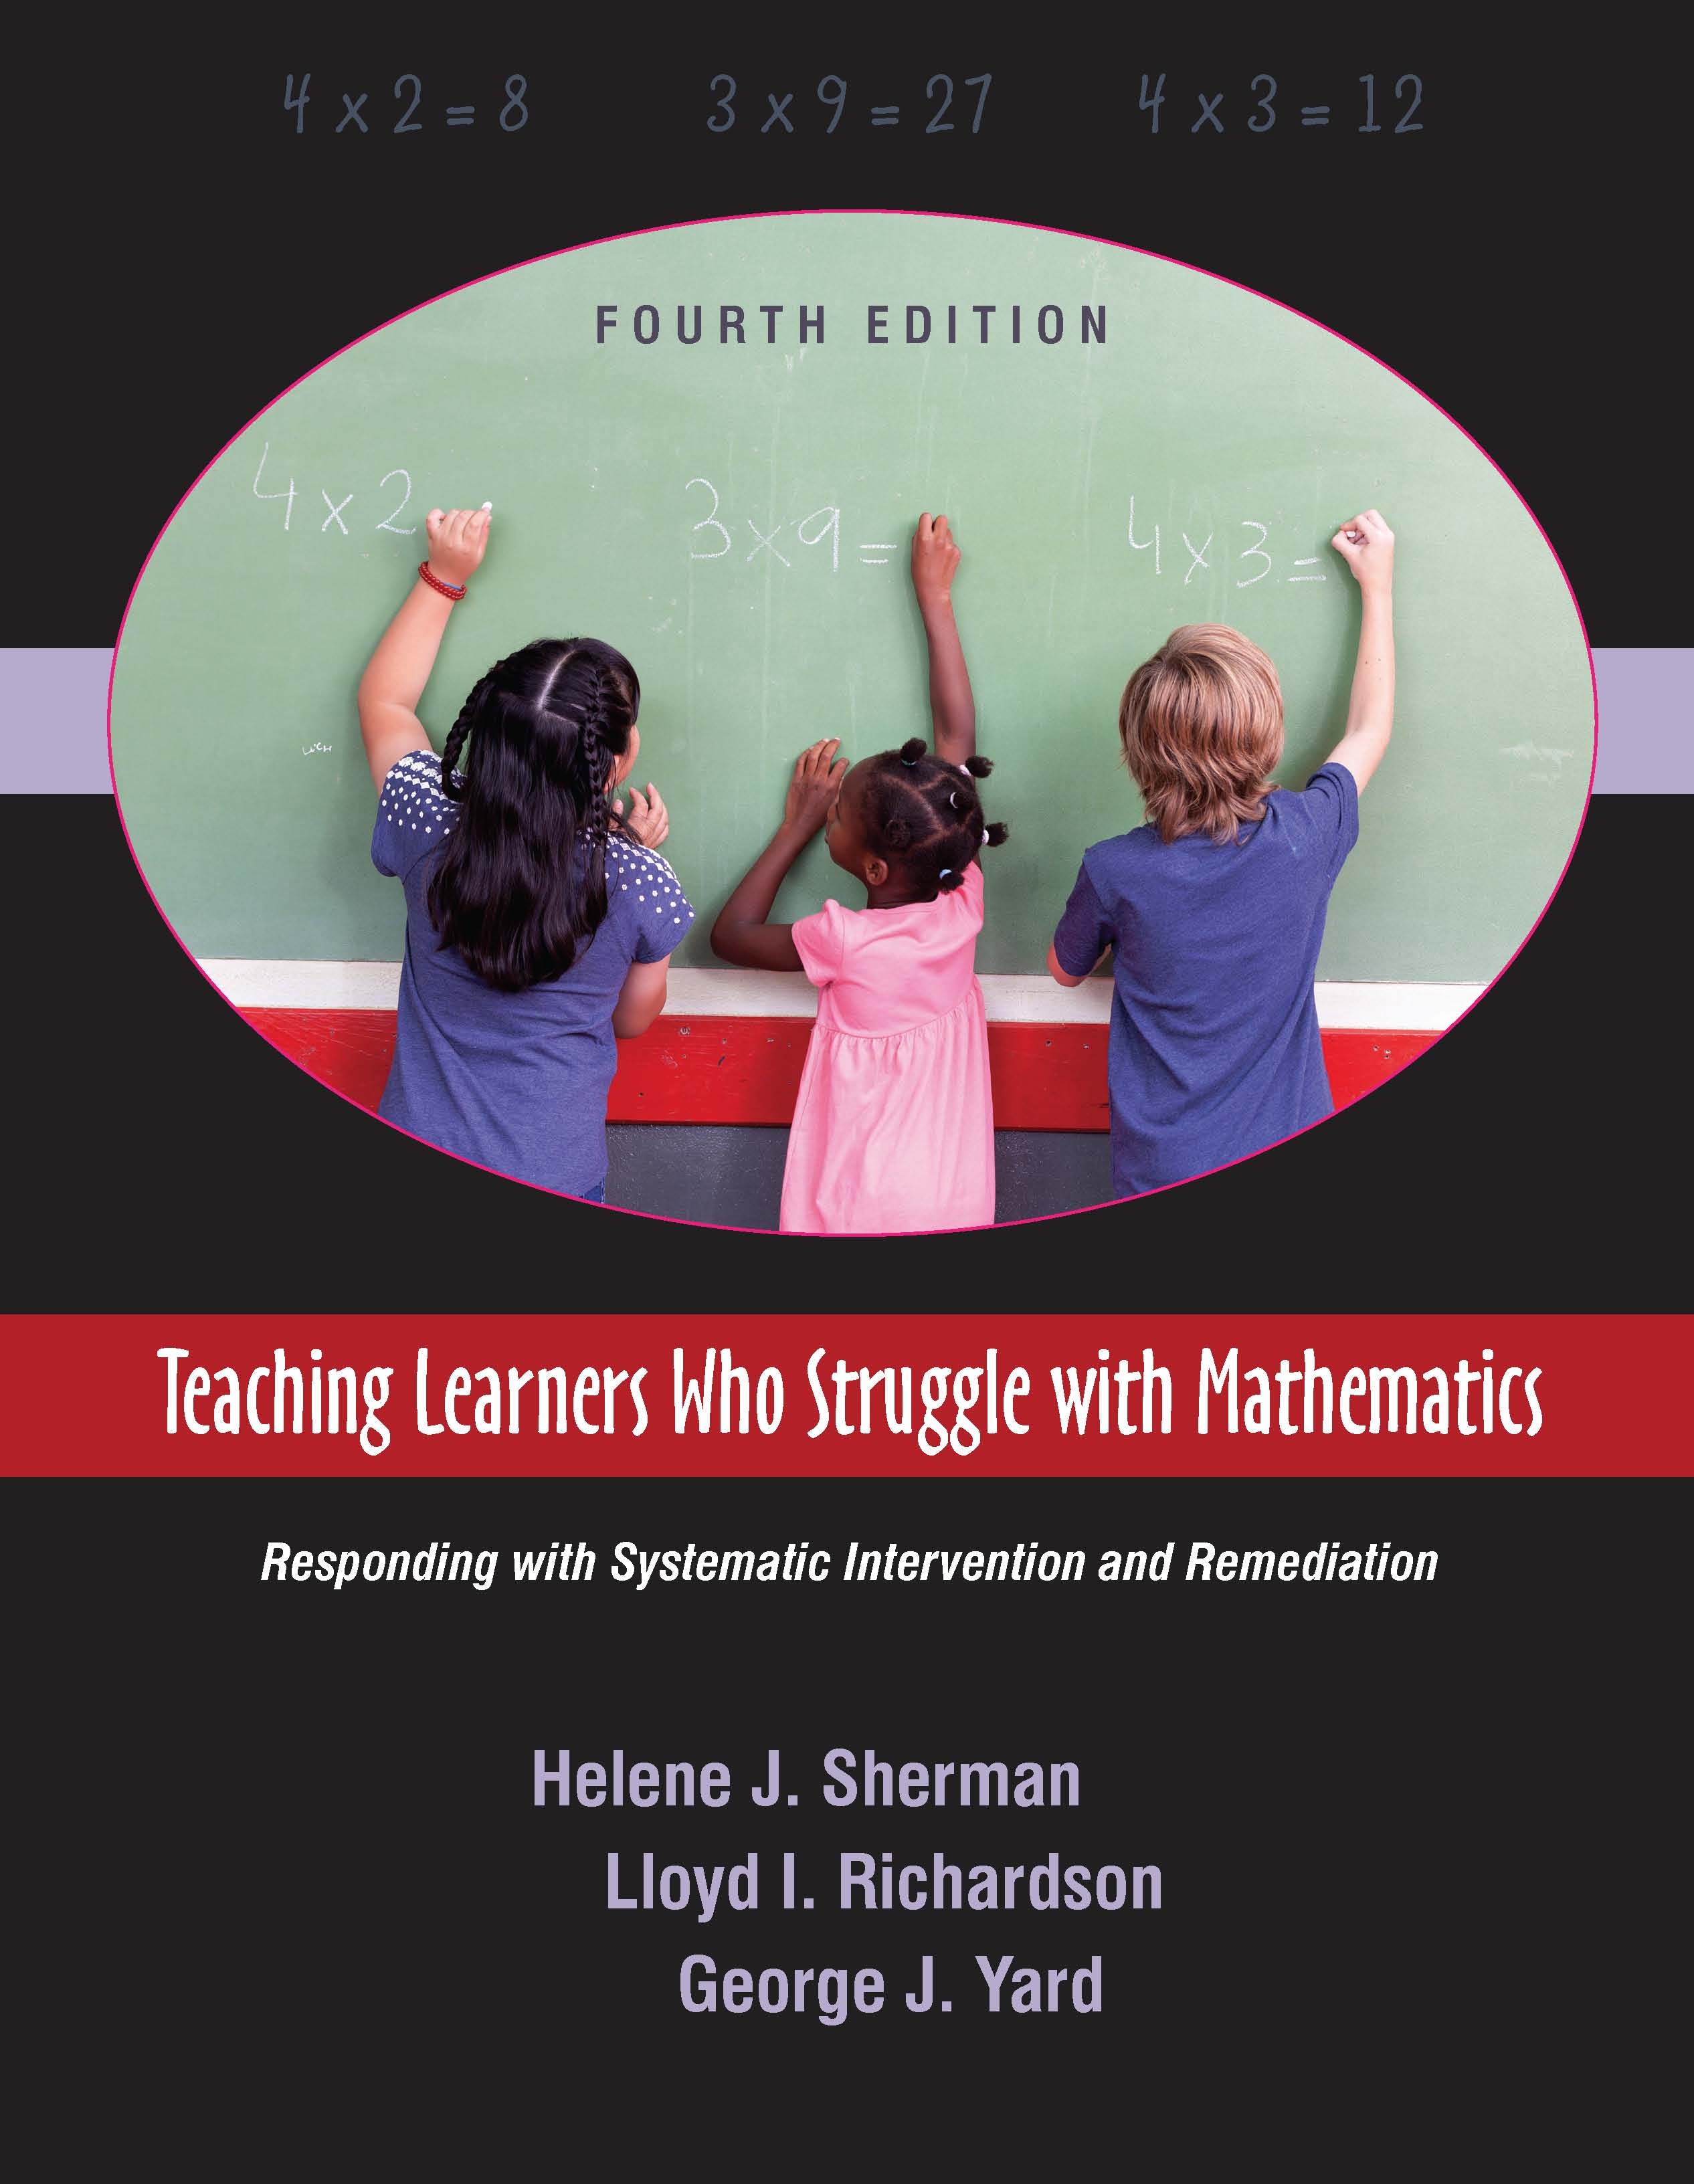 Teaching Learners Who Struggle with Mathematics: Responding with Systematic Intervention and Remediation, Fourth Edition by Helene J. Sherman, Lloyd I. Richardson, George J. Yard